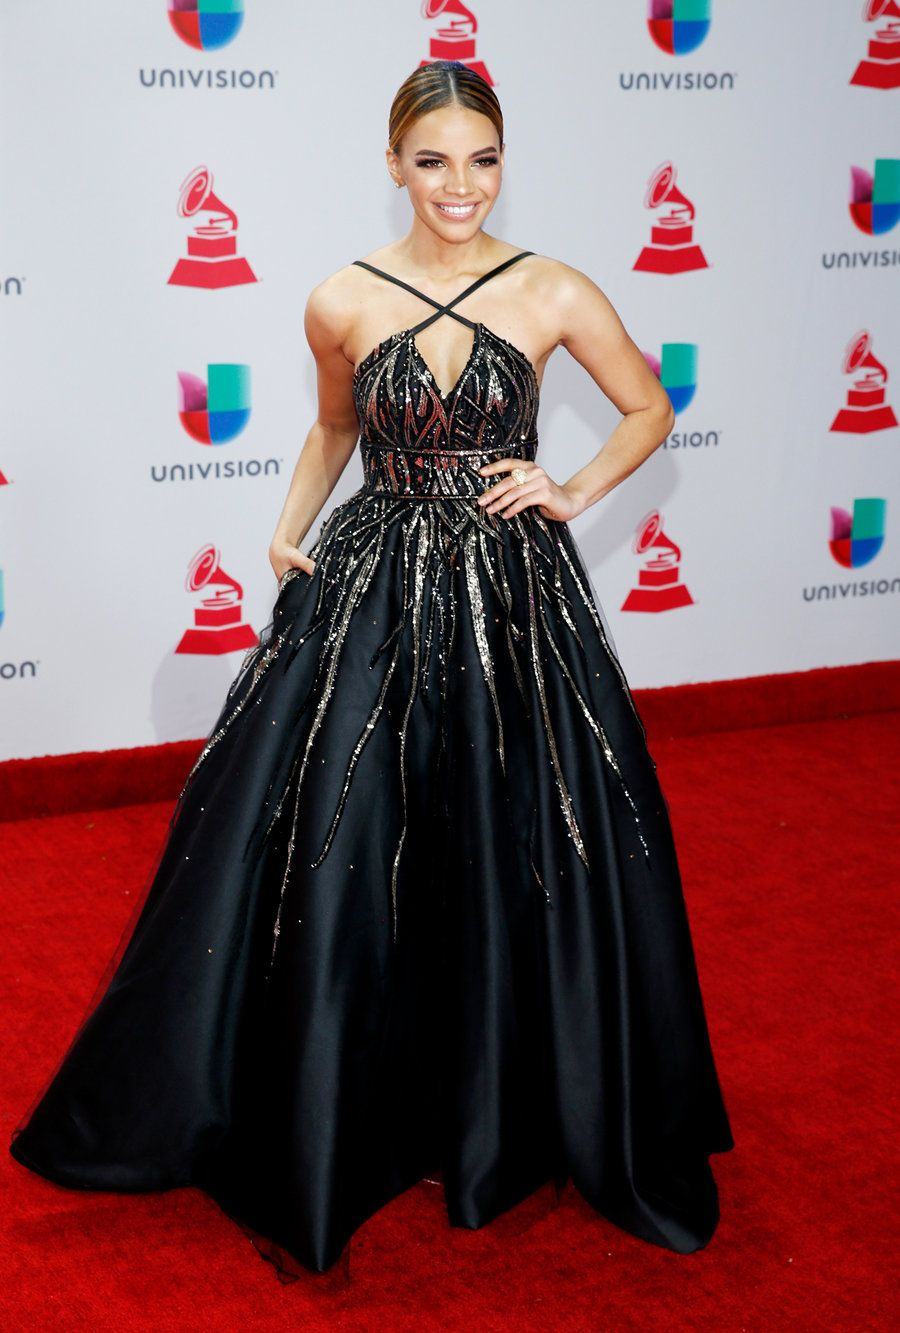 14 of the Best Red Carpet Looks at the 2017 Latin Grammy Awards